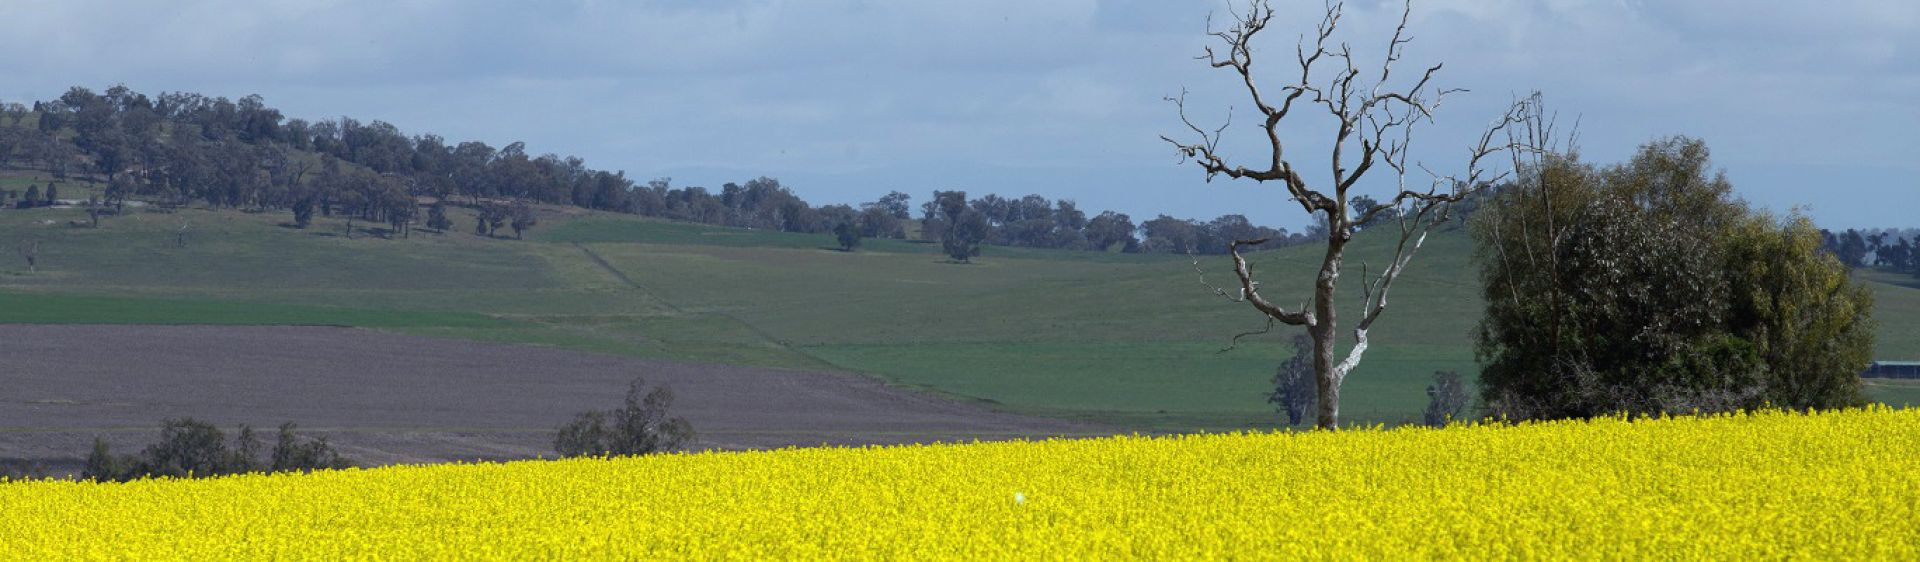 Scenic views of a canola field near Tamworth.